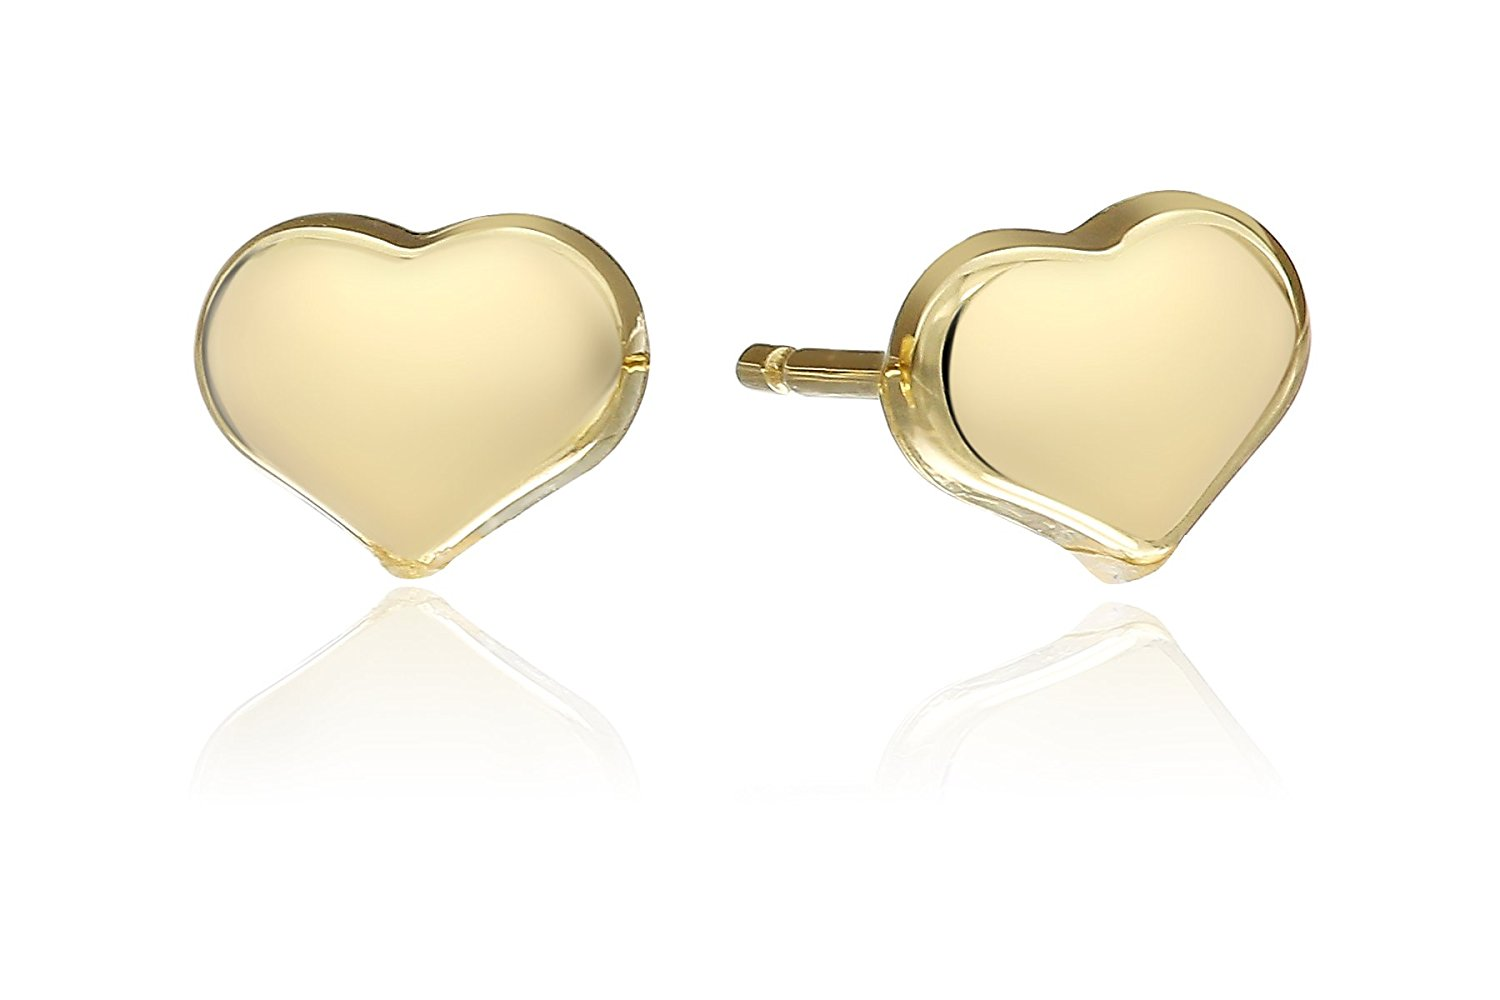 Roberto Coin Womens Solid Heart Stud Earrings - Tiny Treasures